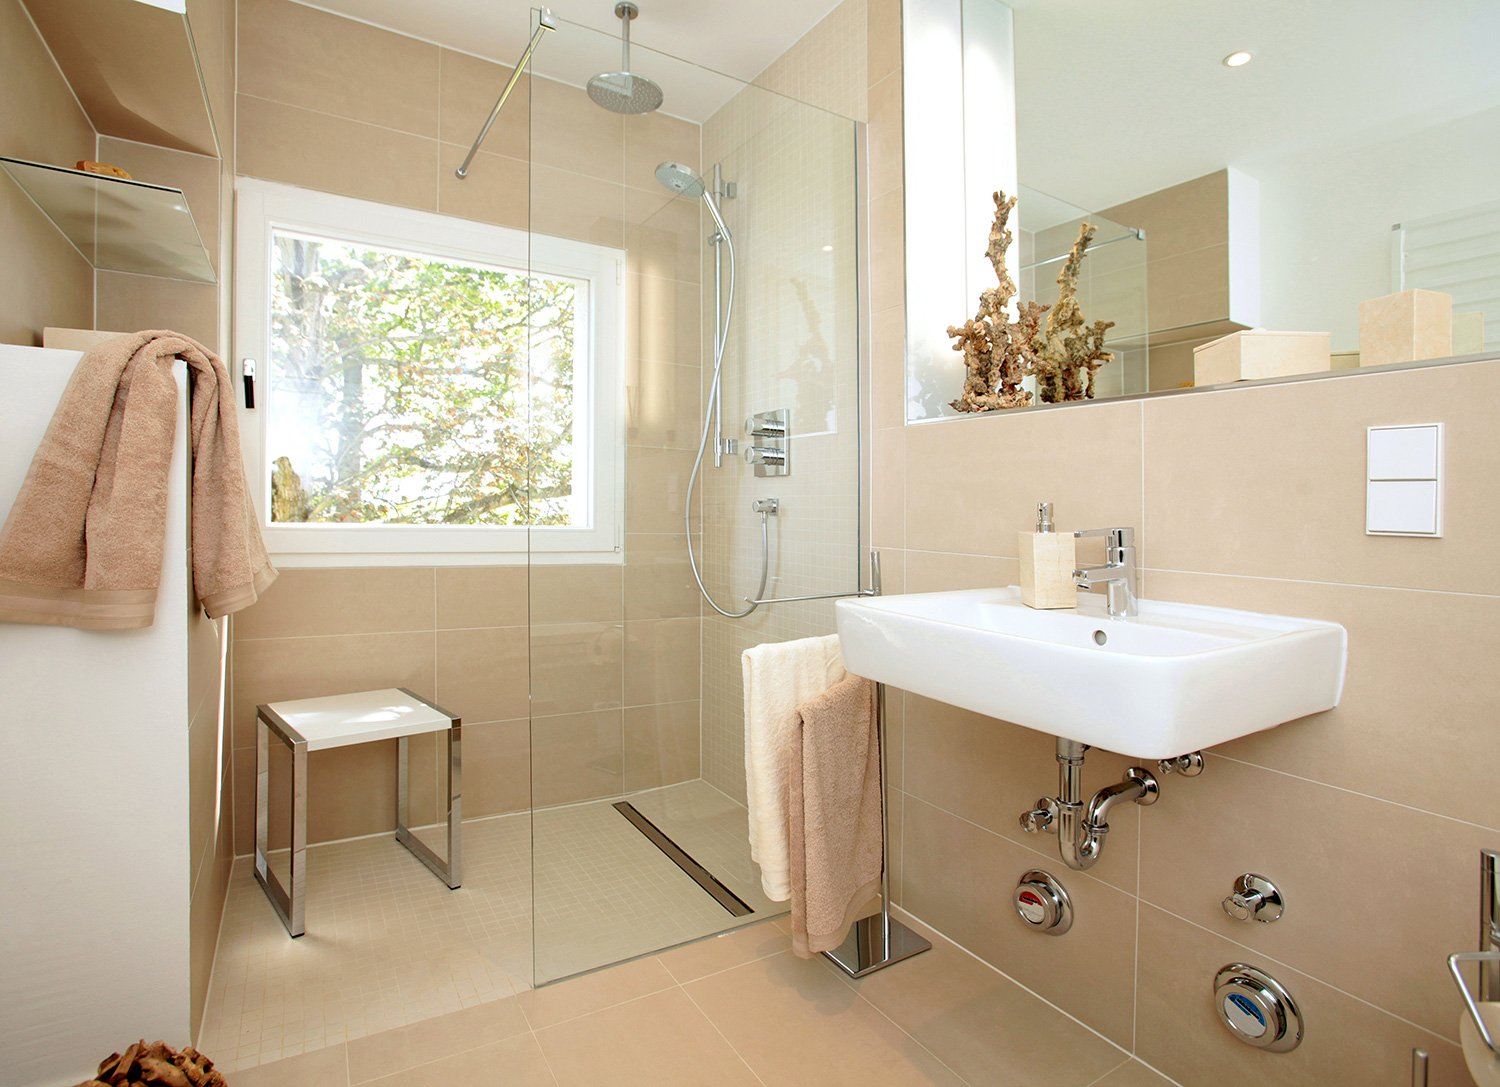 Bathrooms for older people Brentwood